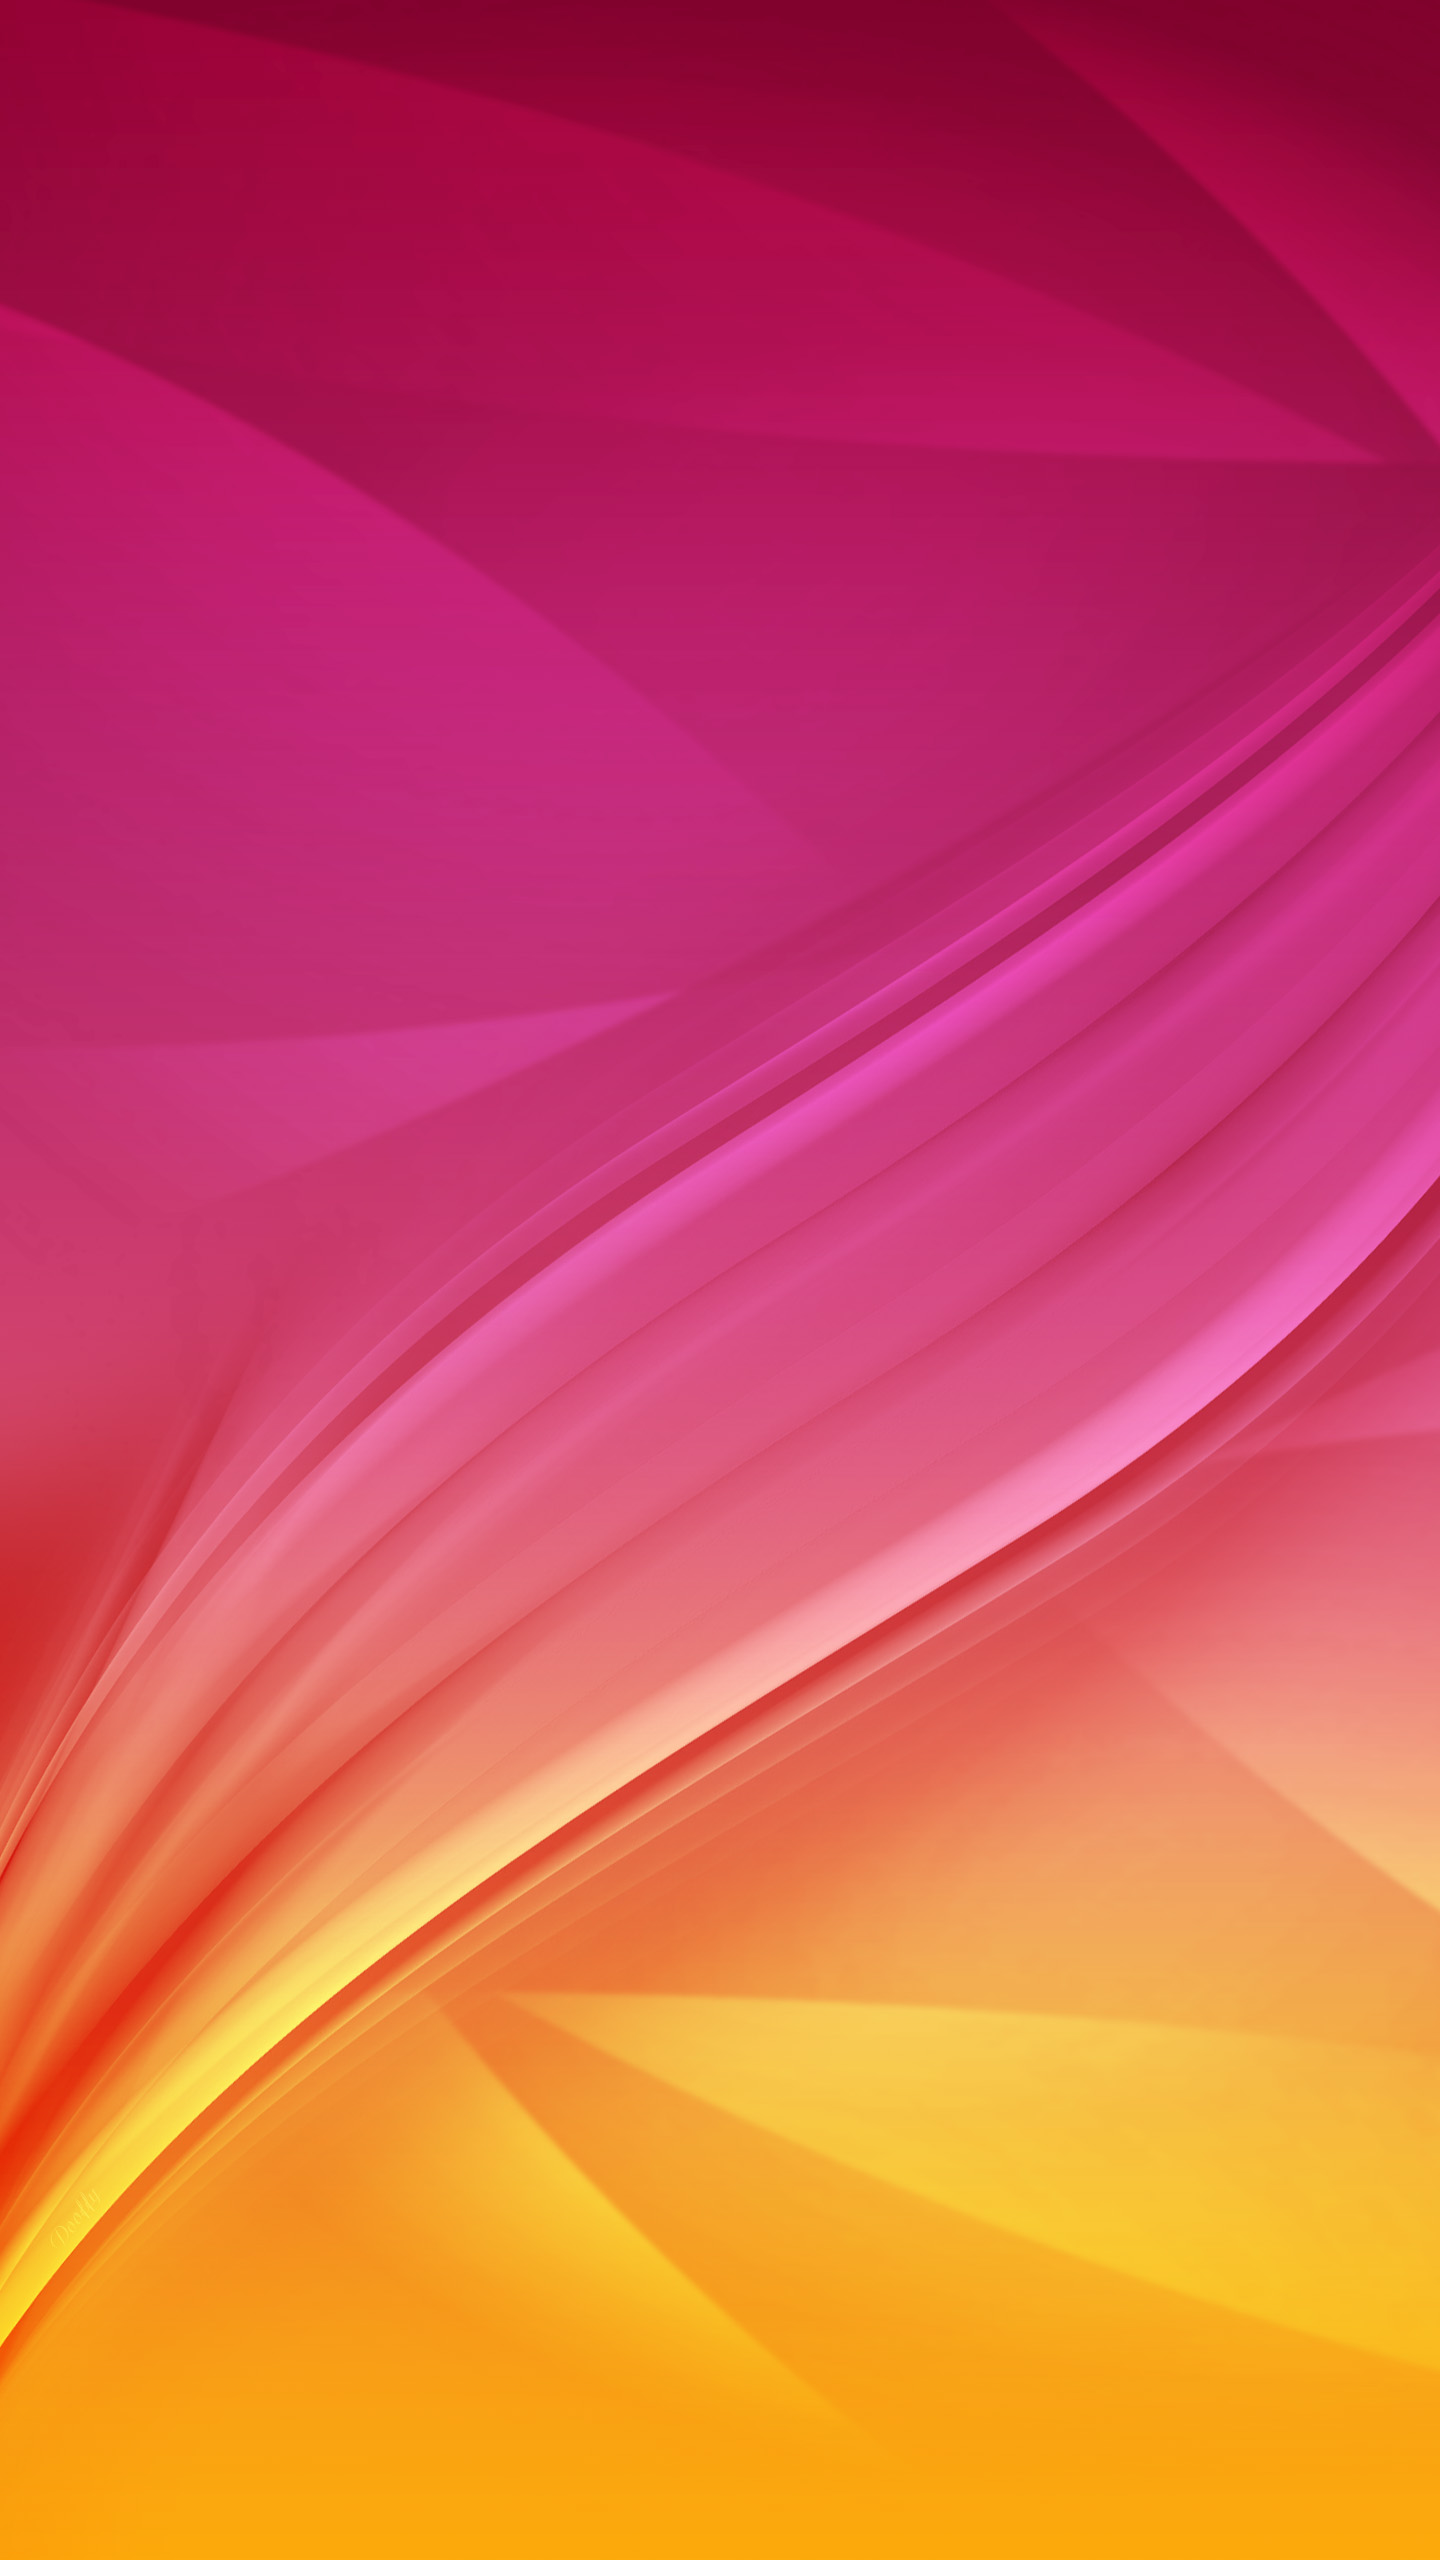 Wallpaper Samsung Galaxy S6 Colours By Dooffy By Dooffy Design On Deviantart